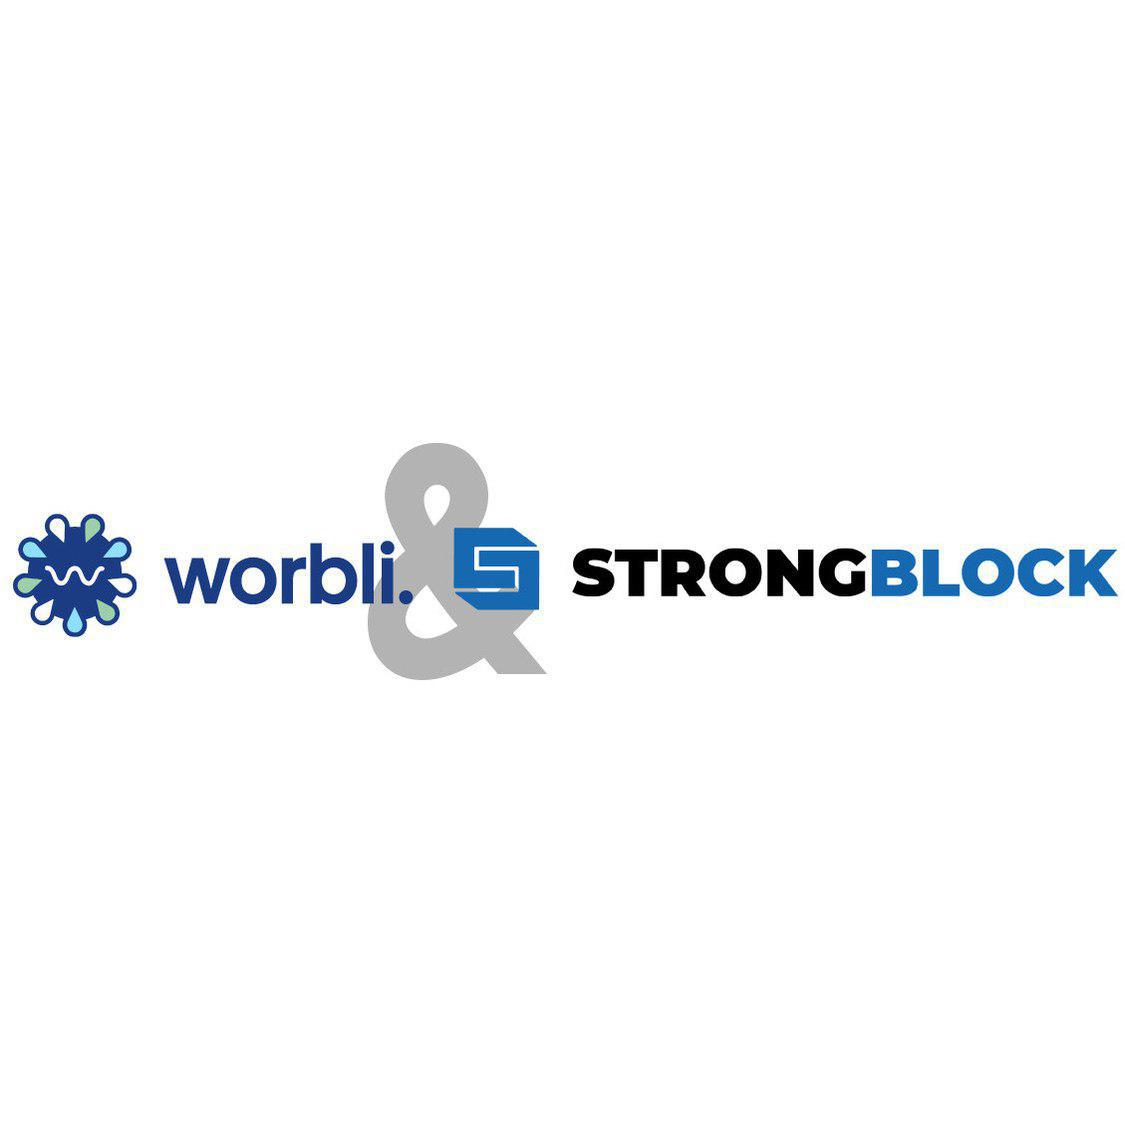 worbli-announced-new-partnership-with-strongblock